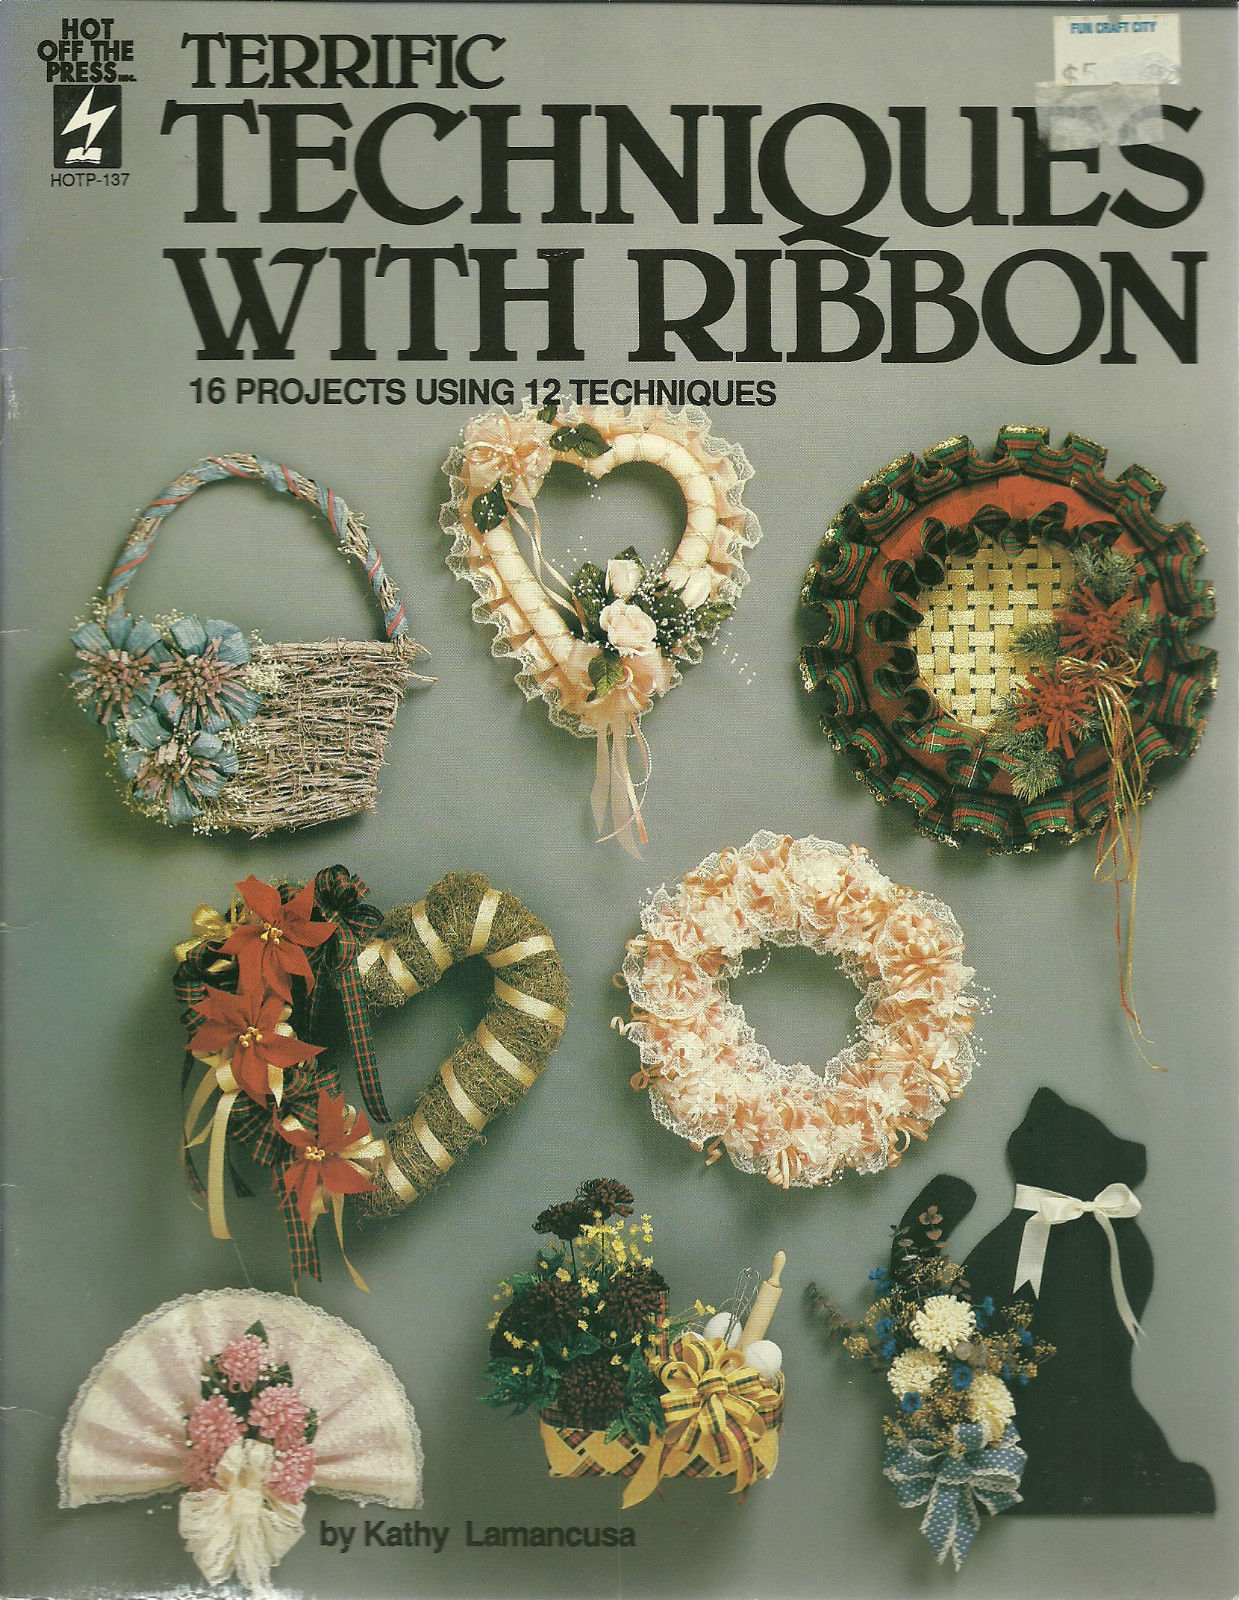 Terrific Techniques With Ribbon Hot Off The Press Book No. 137 Kathy Lamancusa